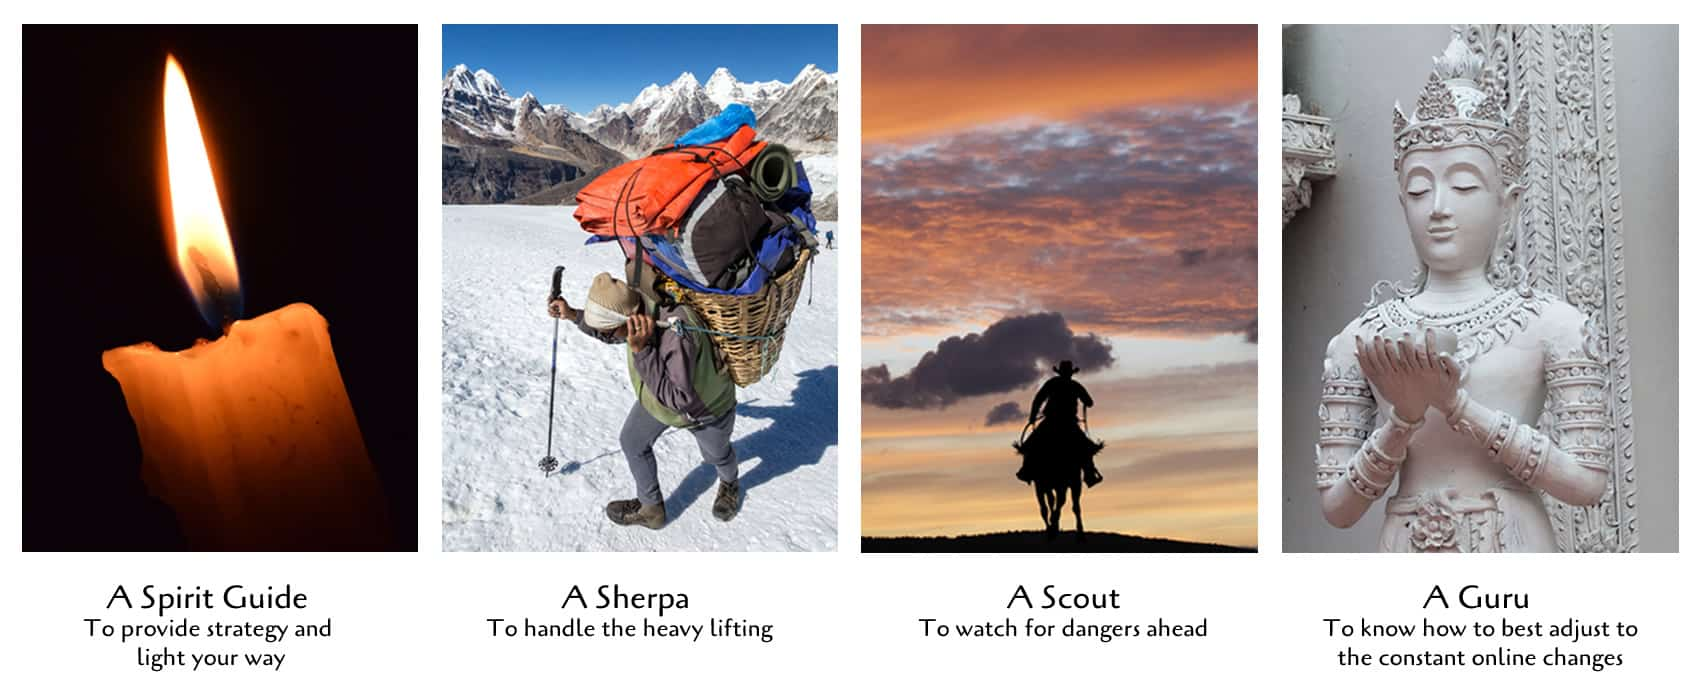 Spirit Guide, Sherpa, Scout and Guru